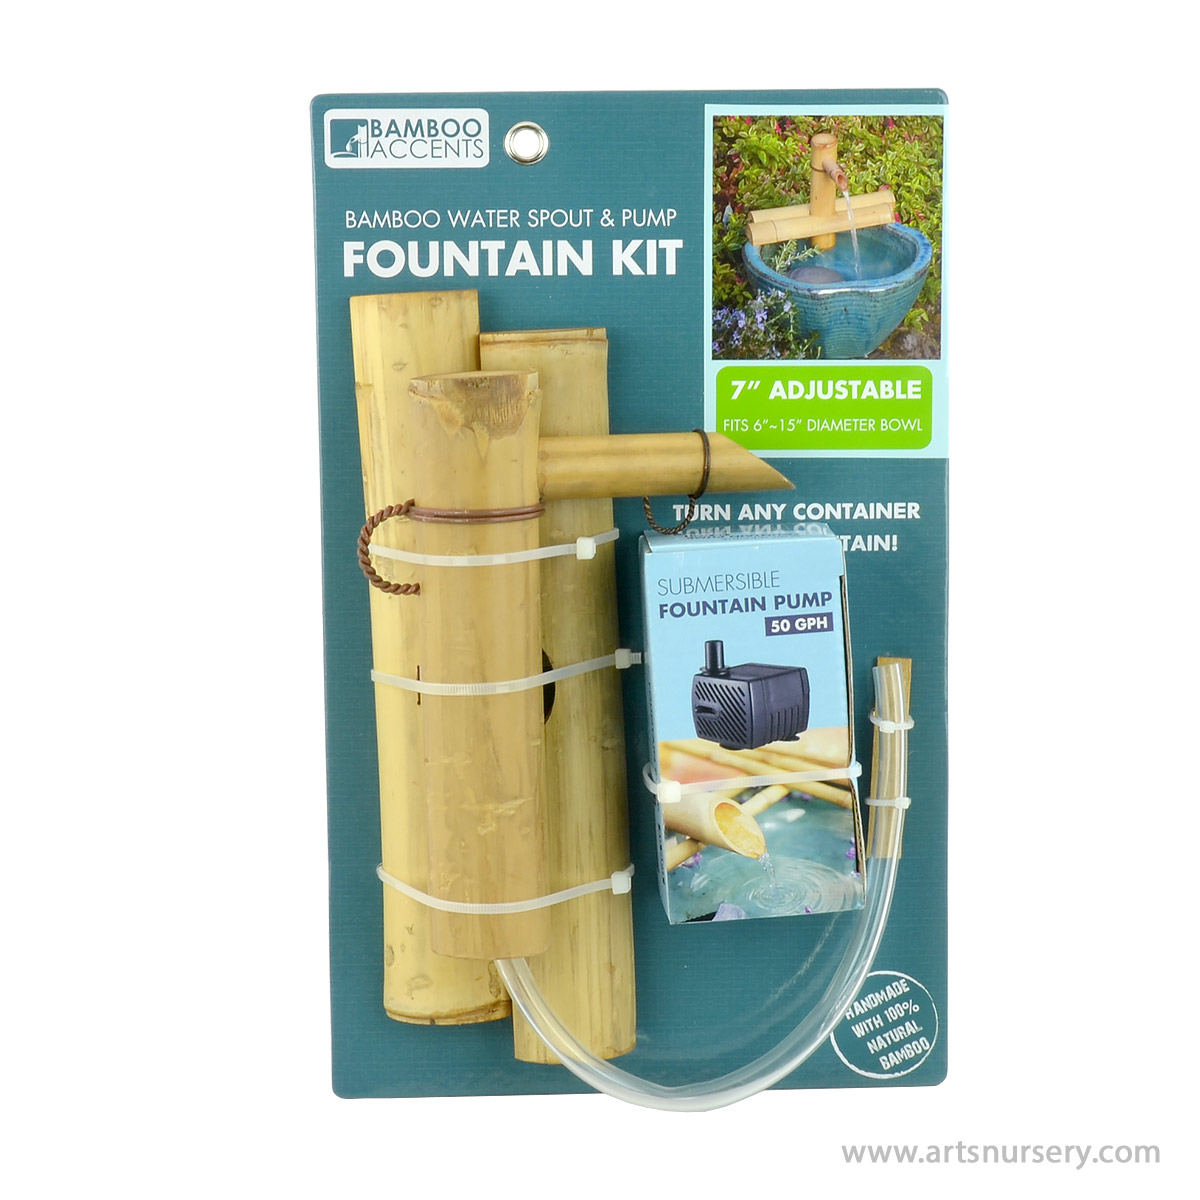 BambooAccents_7in_AdjustableFountainKit.jpg